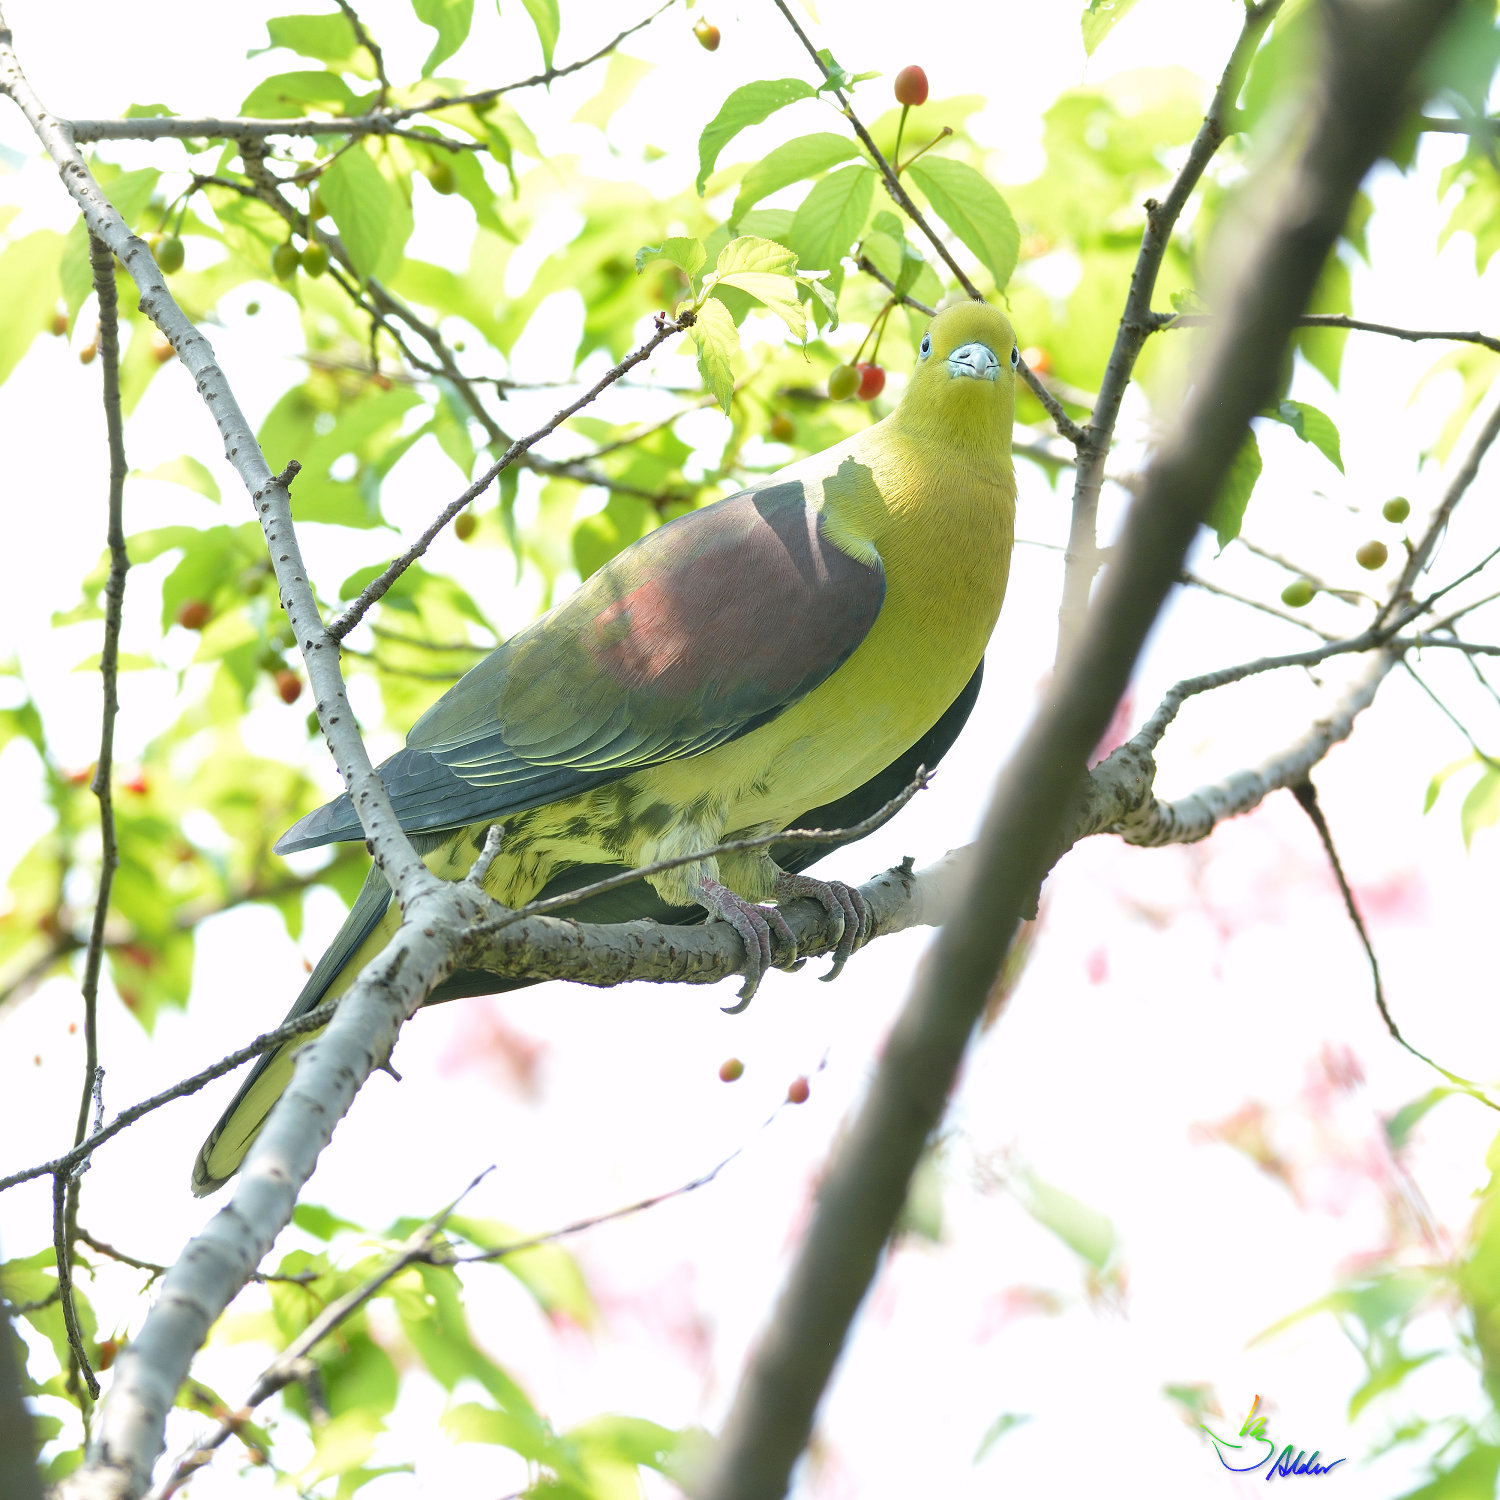 White-bellied_Green_Pigeon_5664